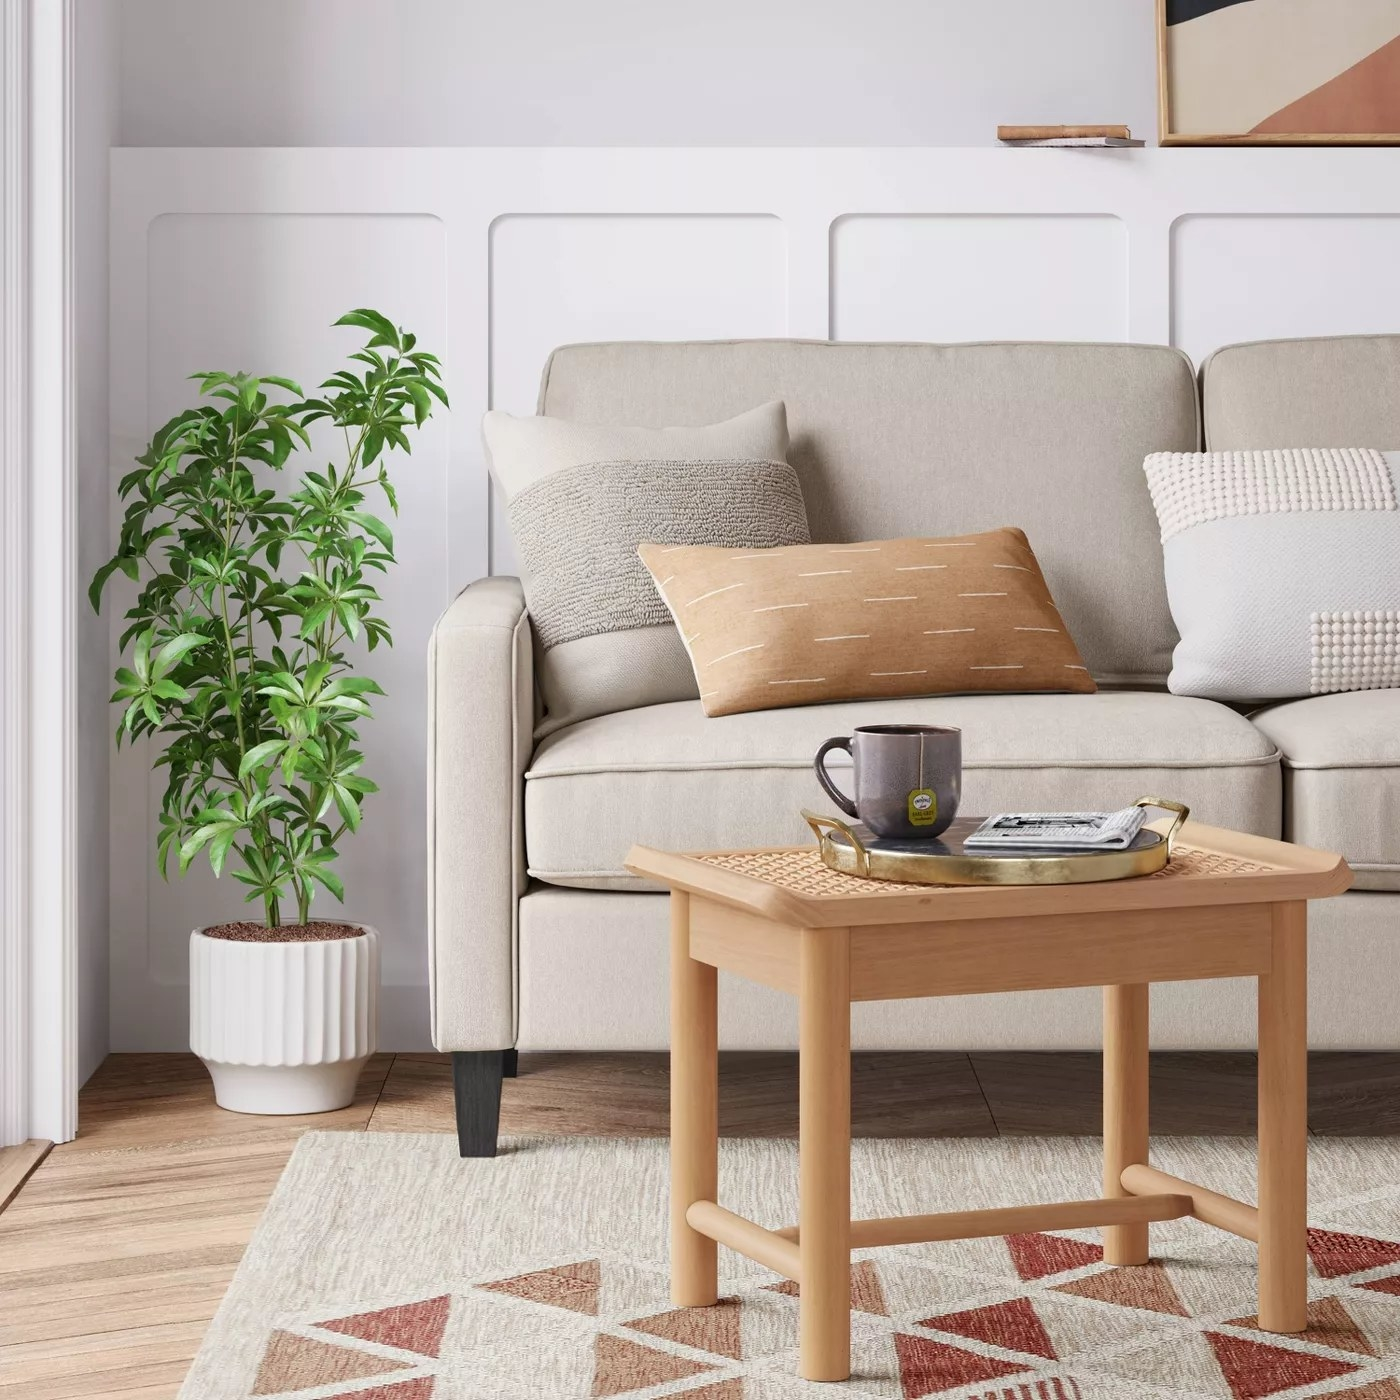 The light wood cane ottoman being used as a table in a living room